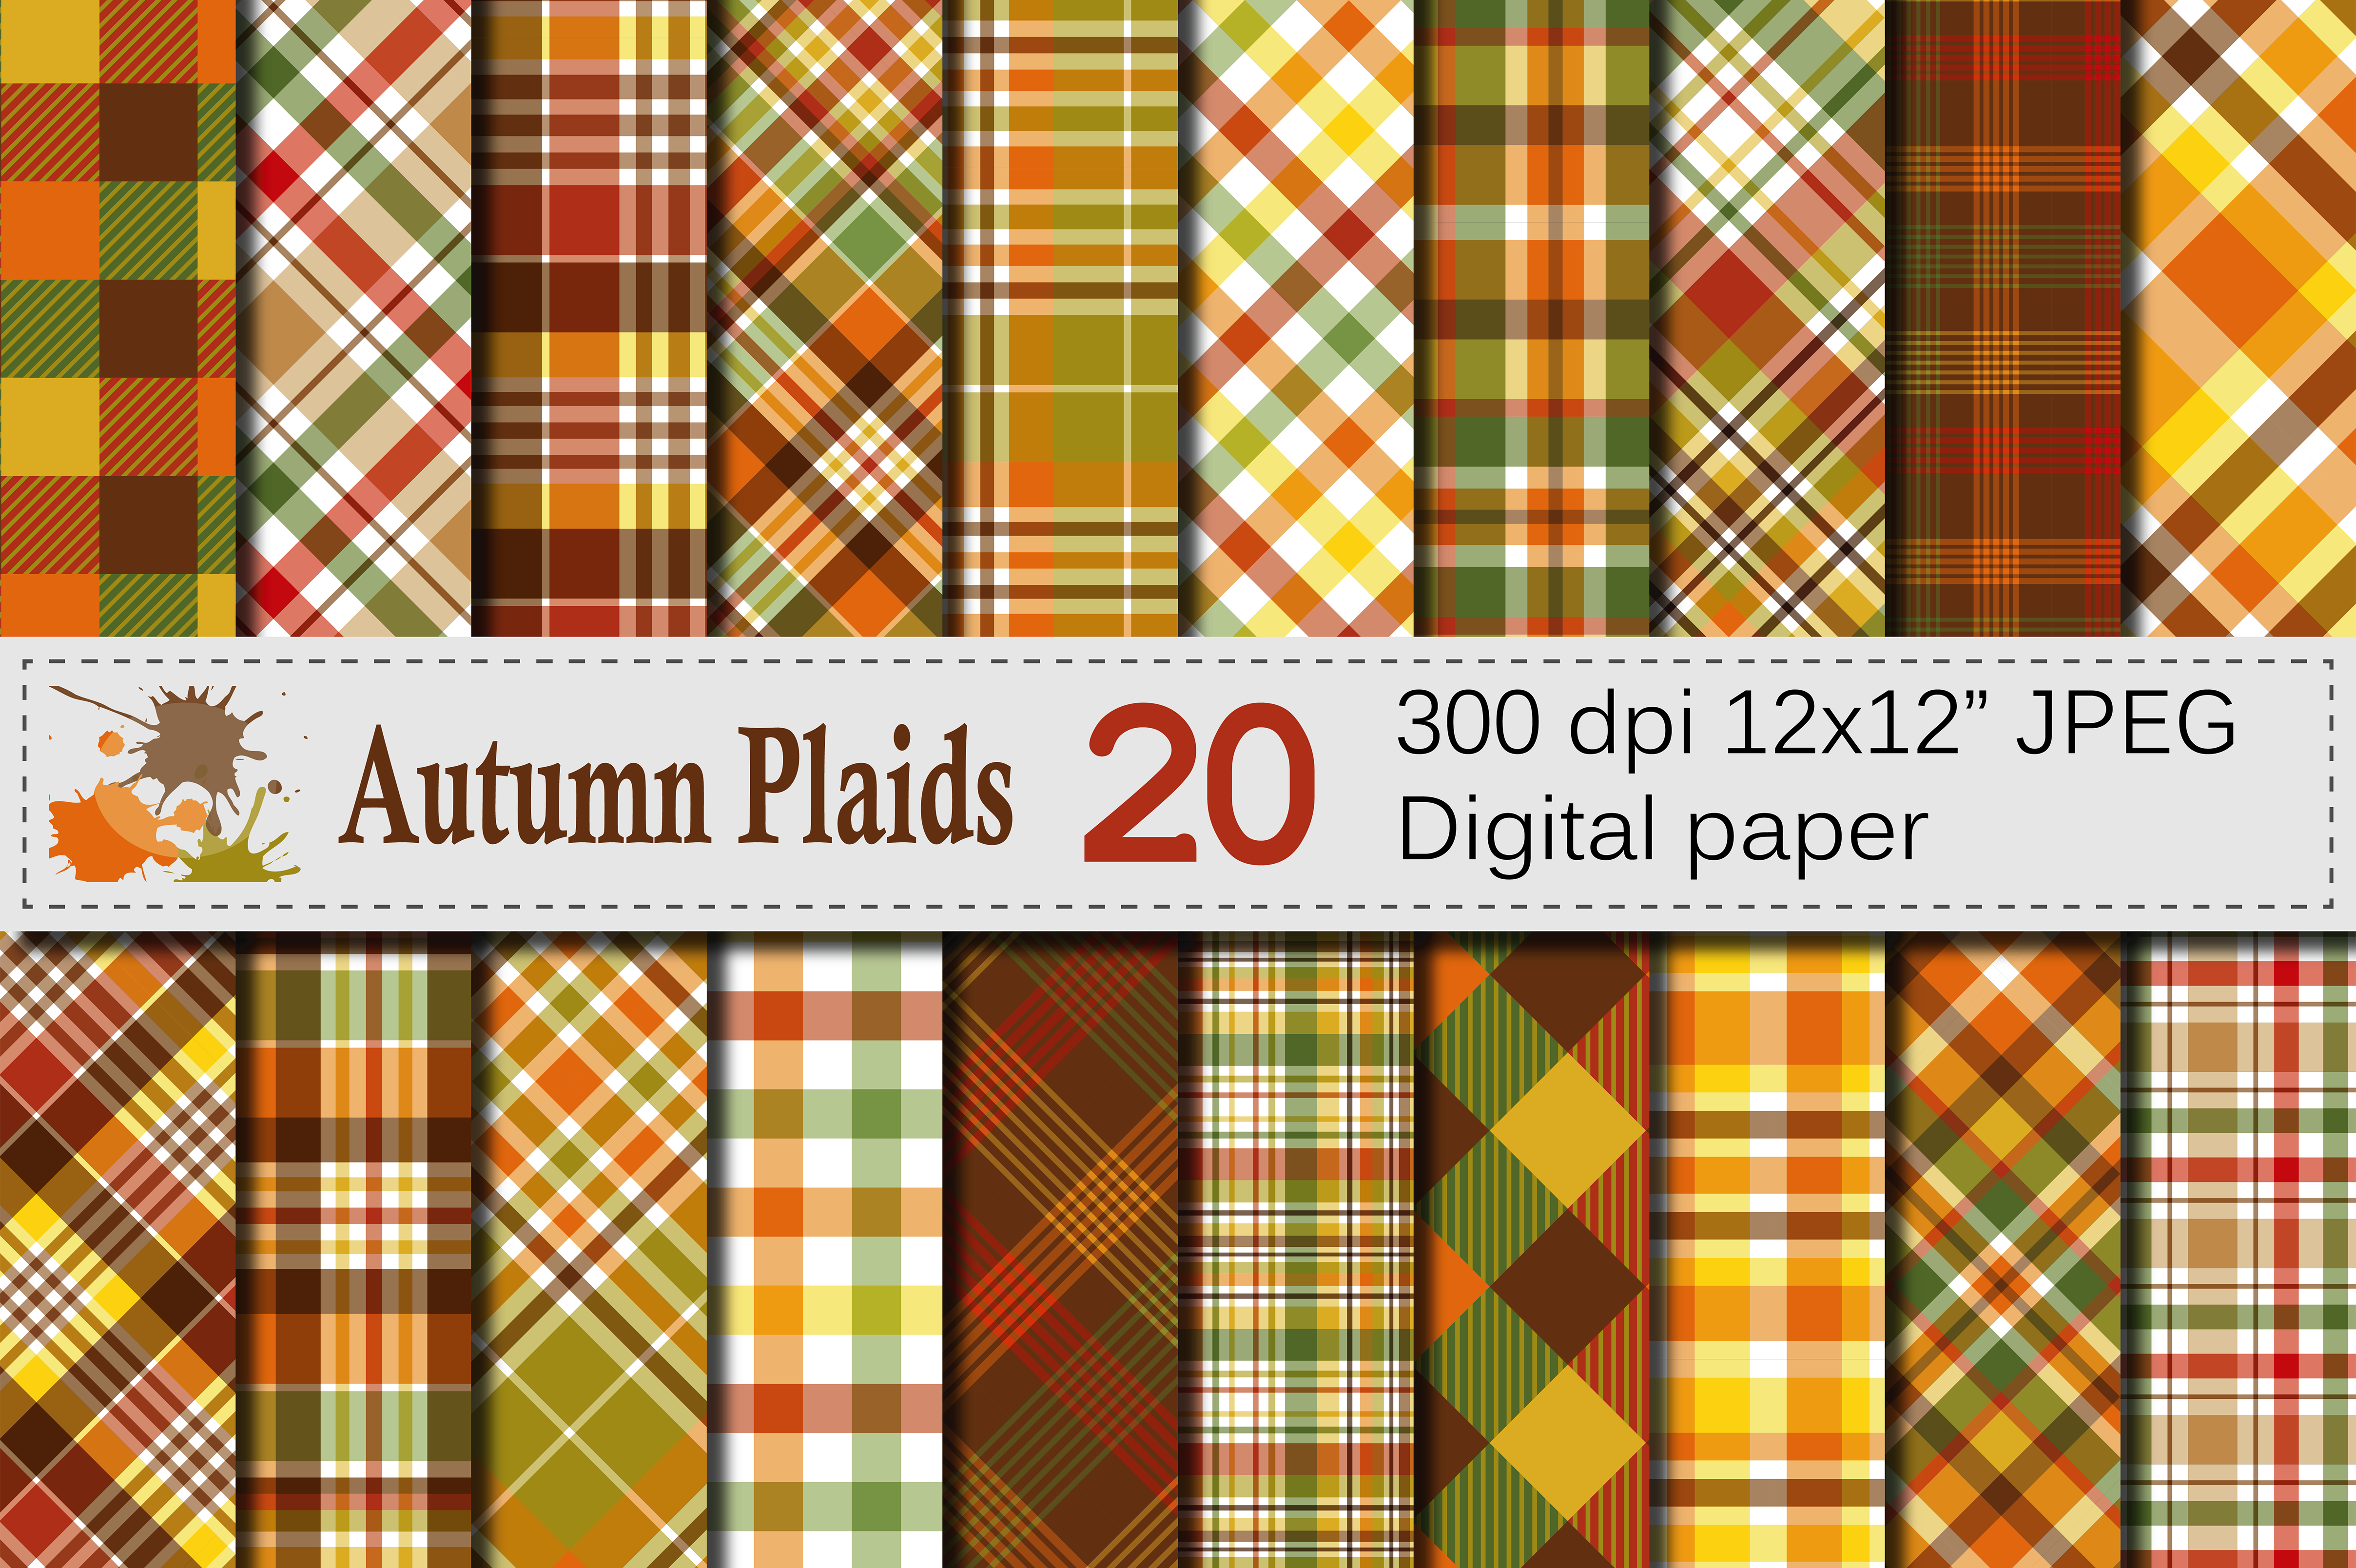 Autumn Plaid Digital Paper - Fall Plaid Backgrounds Graphic Backgrounds By VR Digital Design - Image 1